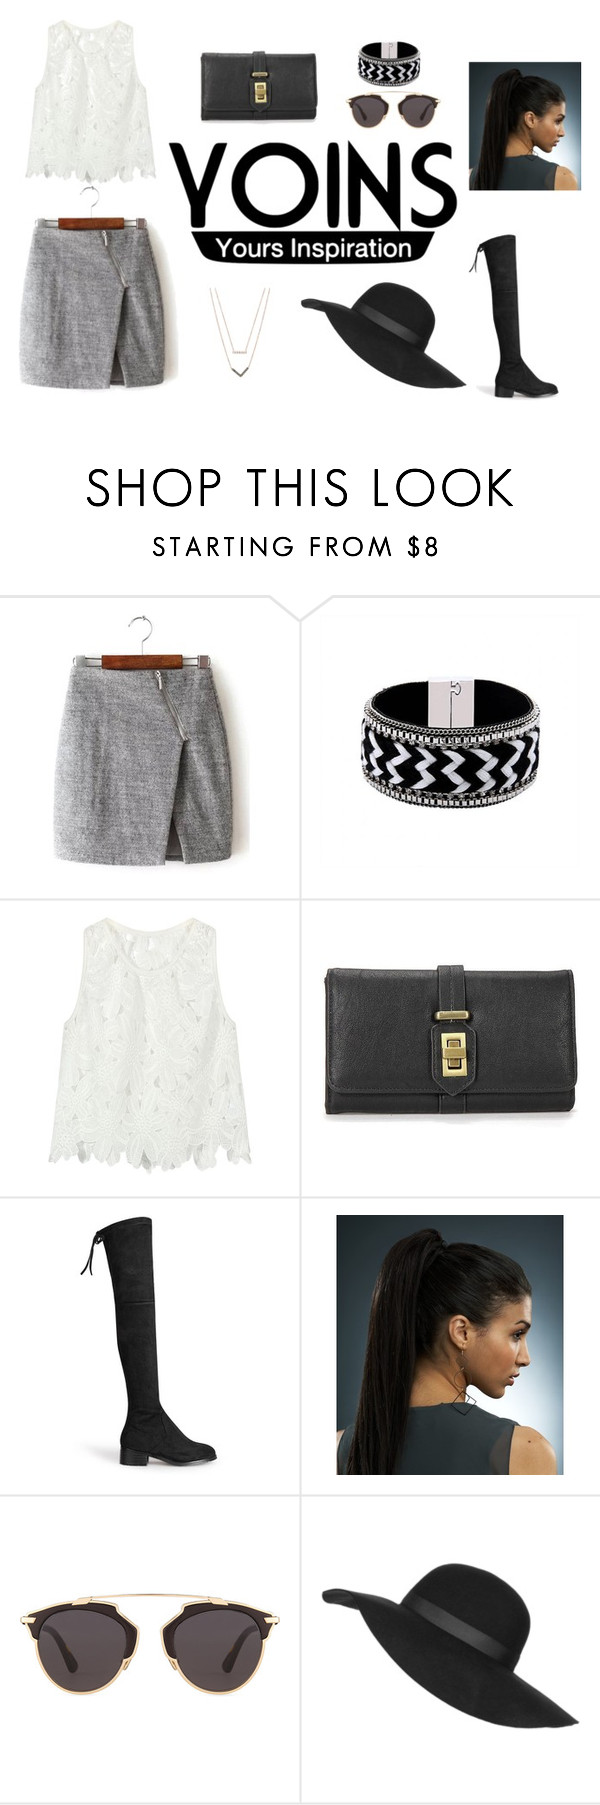 """Untitled #12"" by asija25 ❤ liked on Polyvore featuring Christian Dior, Topshop, Michael Kors, women's clothing, women's fashion, women, female, woman, misses and juniors"